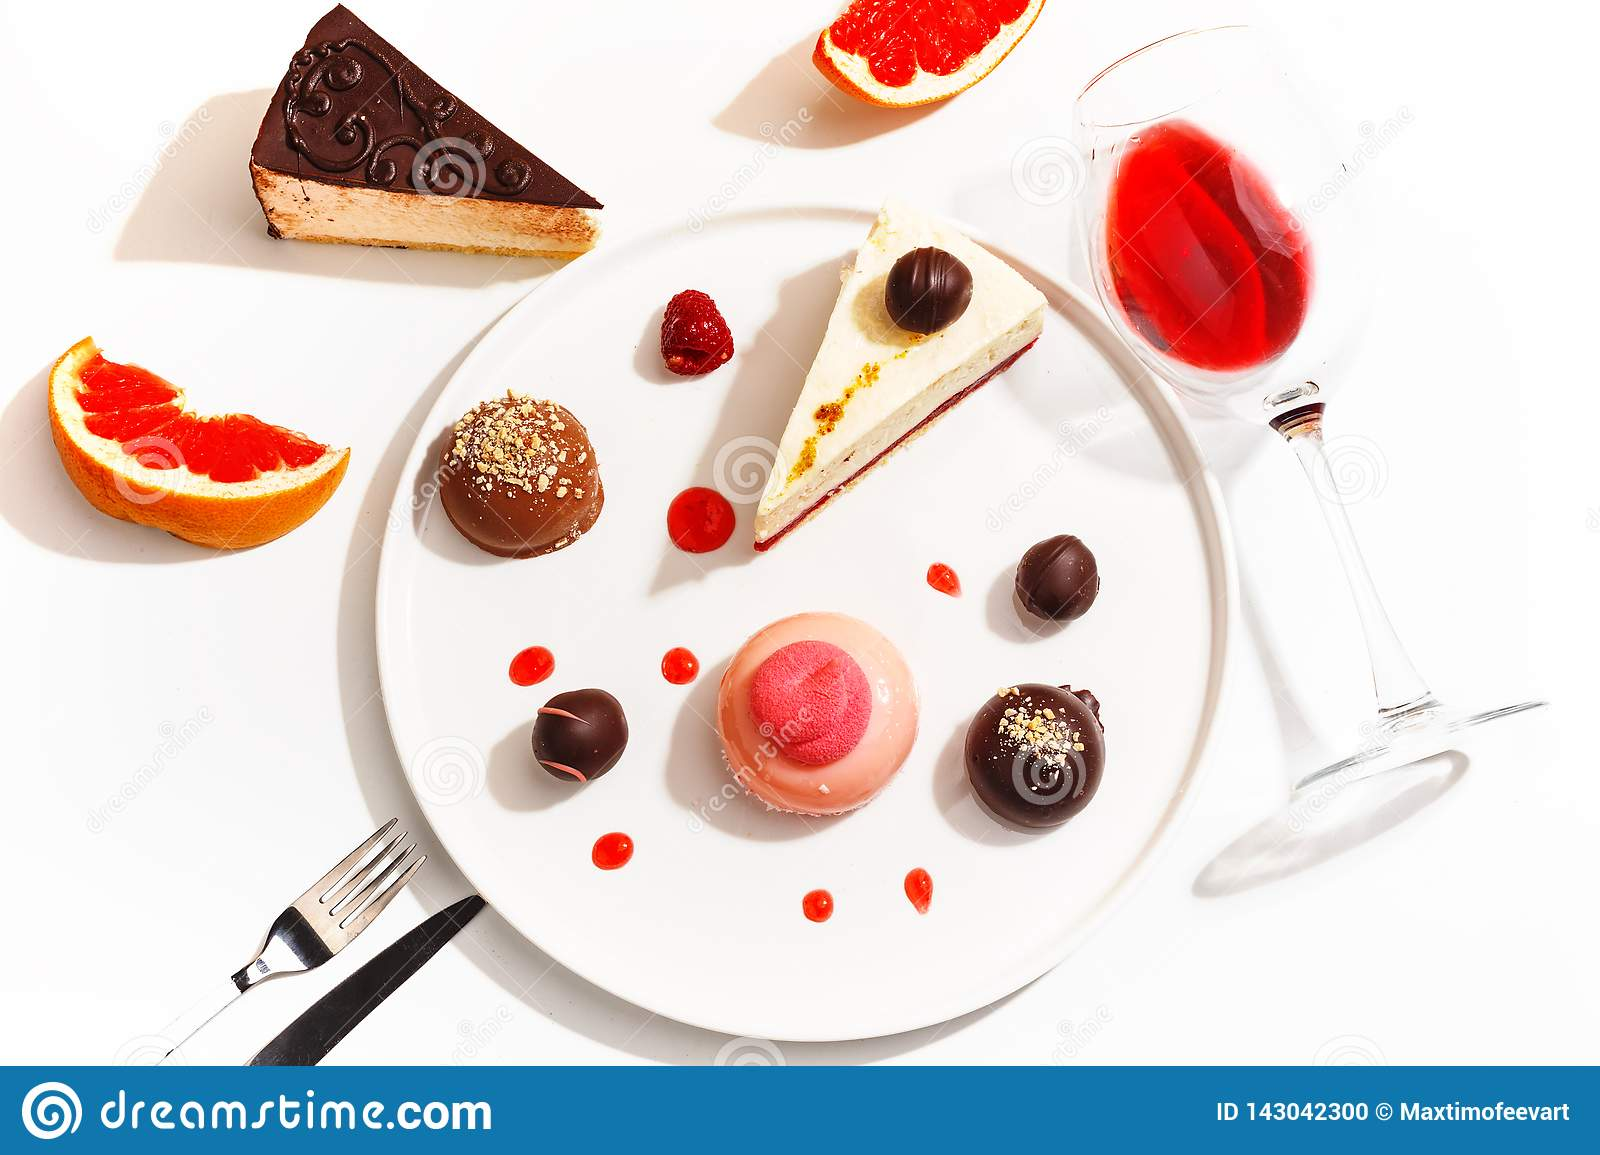 Gourmet desserts and grapefruit slices on a white plate. Top view